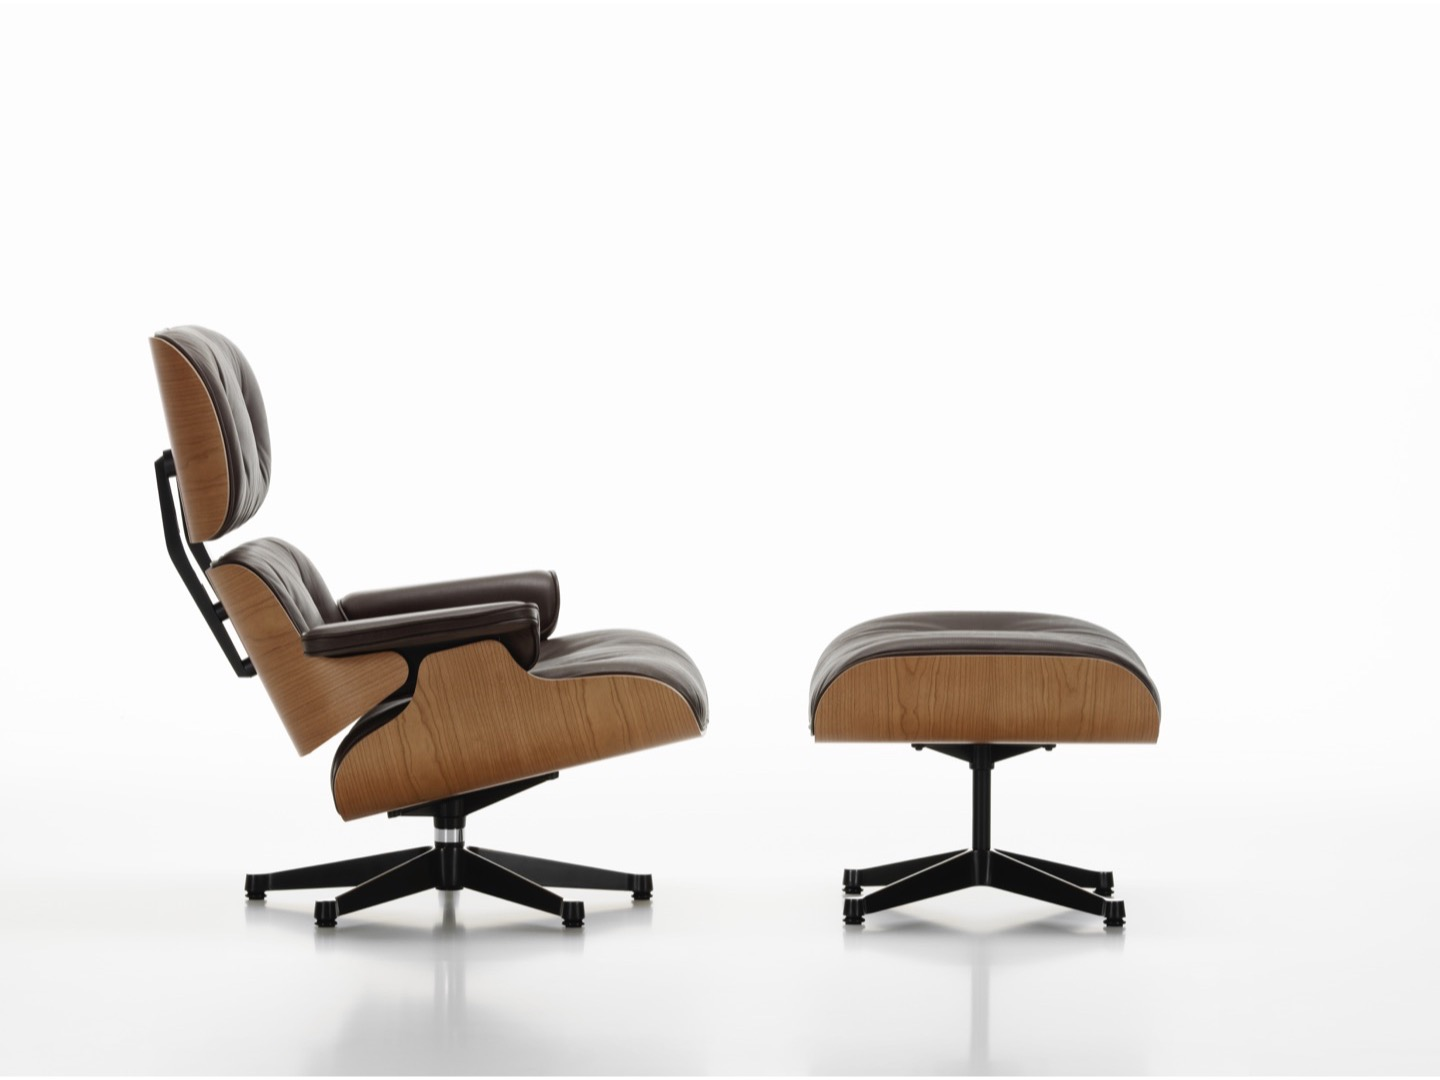 computer lounge chair rv captain chairs for sale eames and ottoman vitra atak design